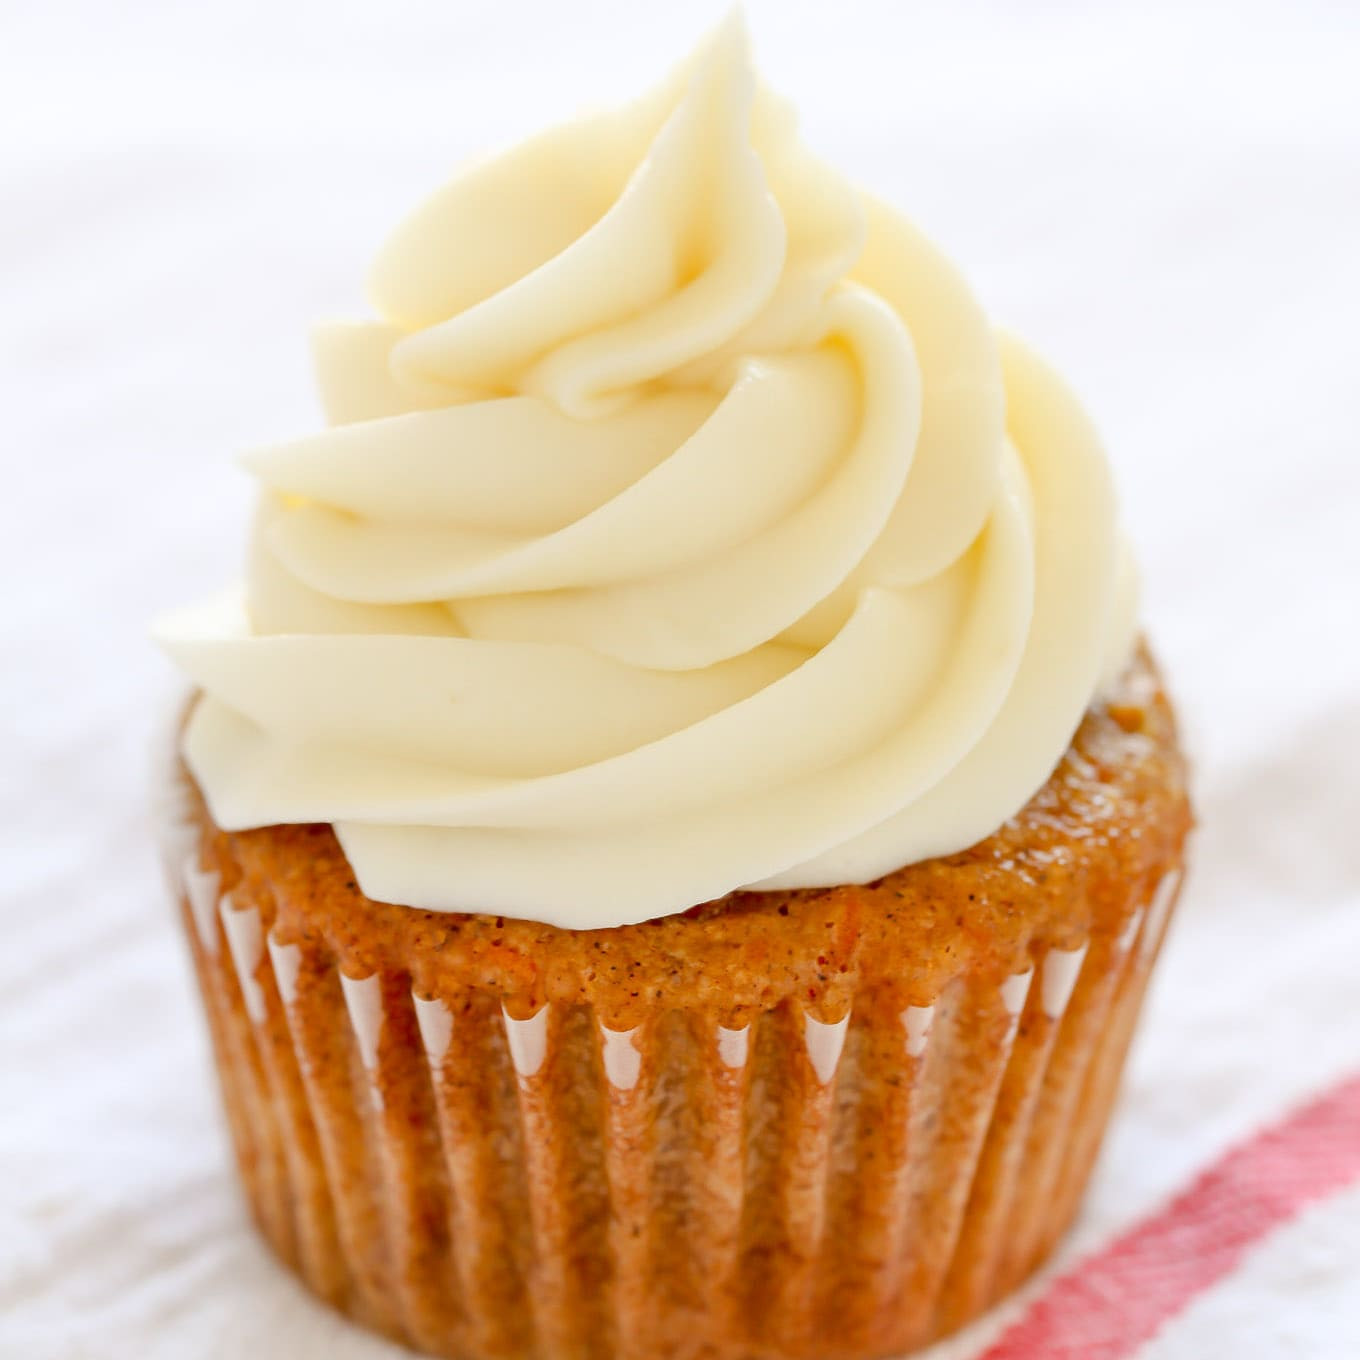 Cake Frosting Recipe  Cream Cheese Frosting Live Well Bake ten